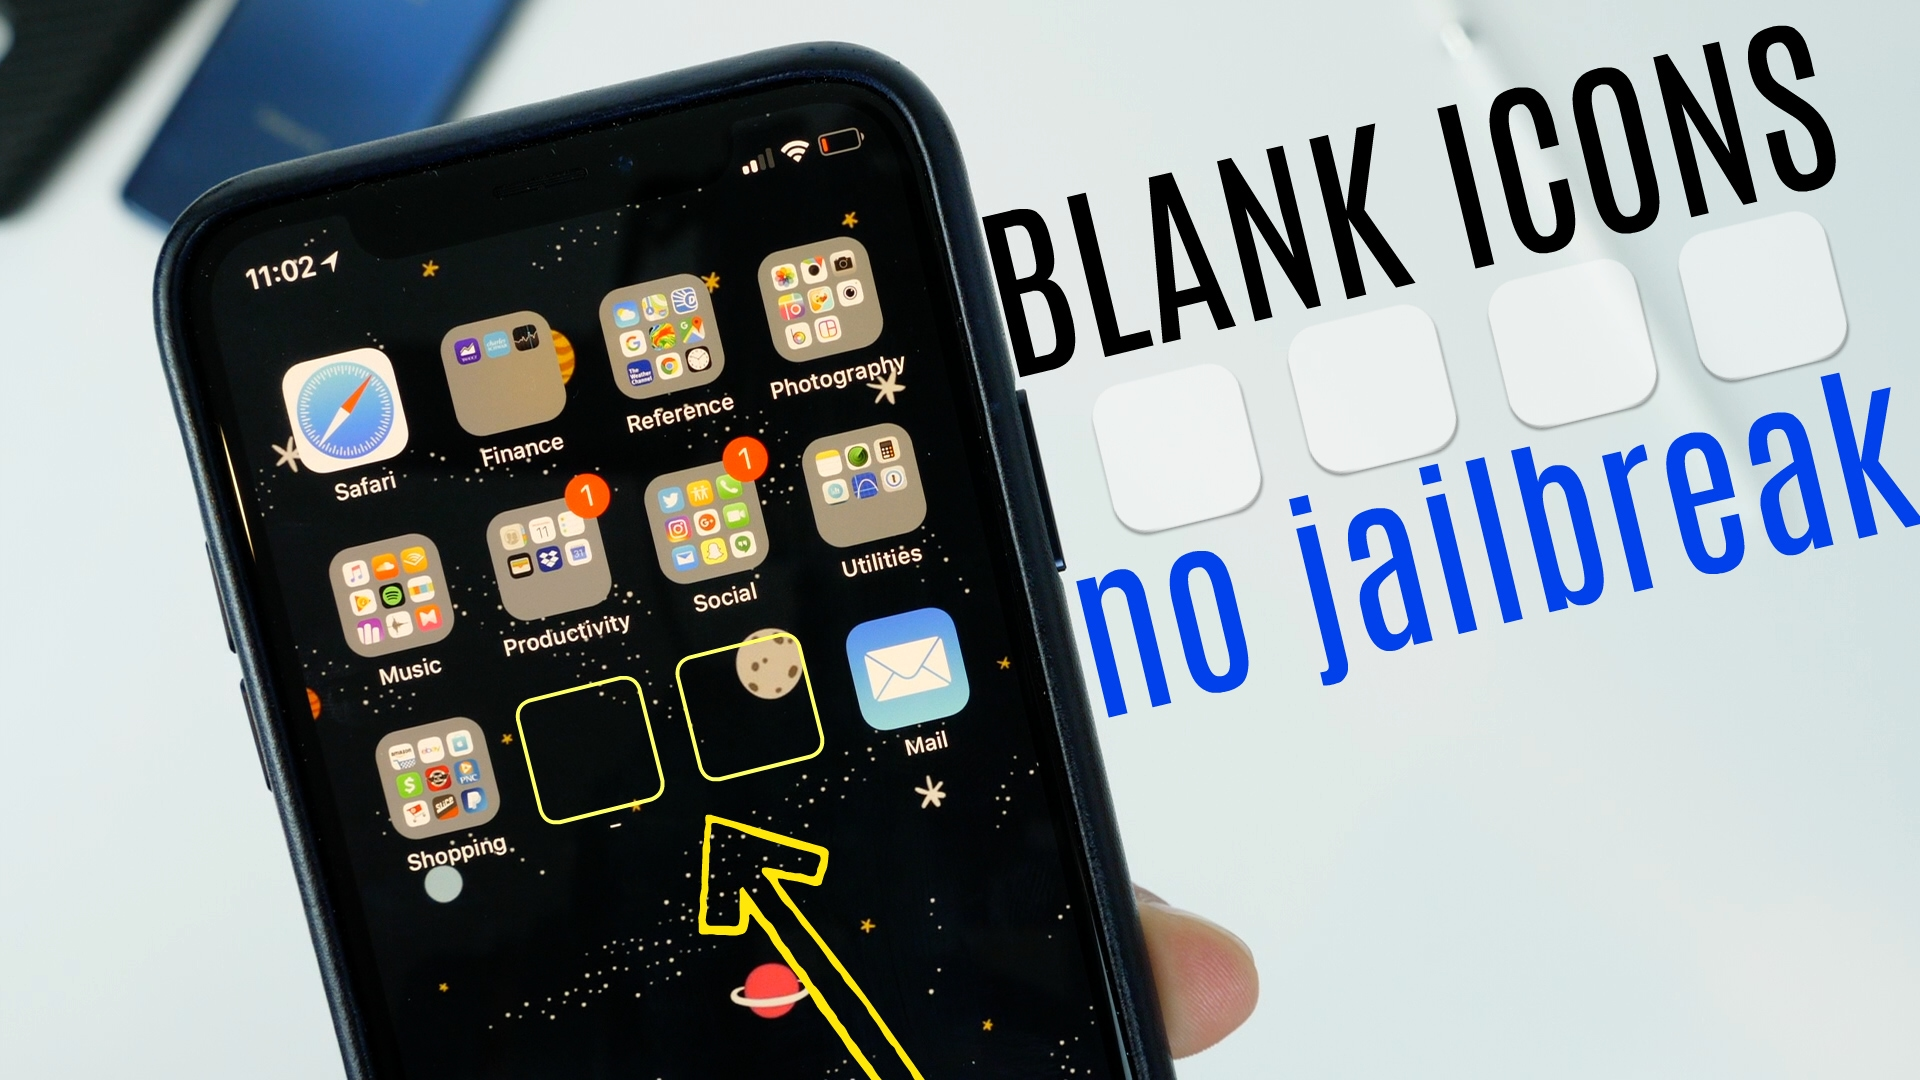 How To Create Blank Icons On Your Iphone No Jailbreak Required